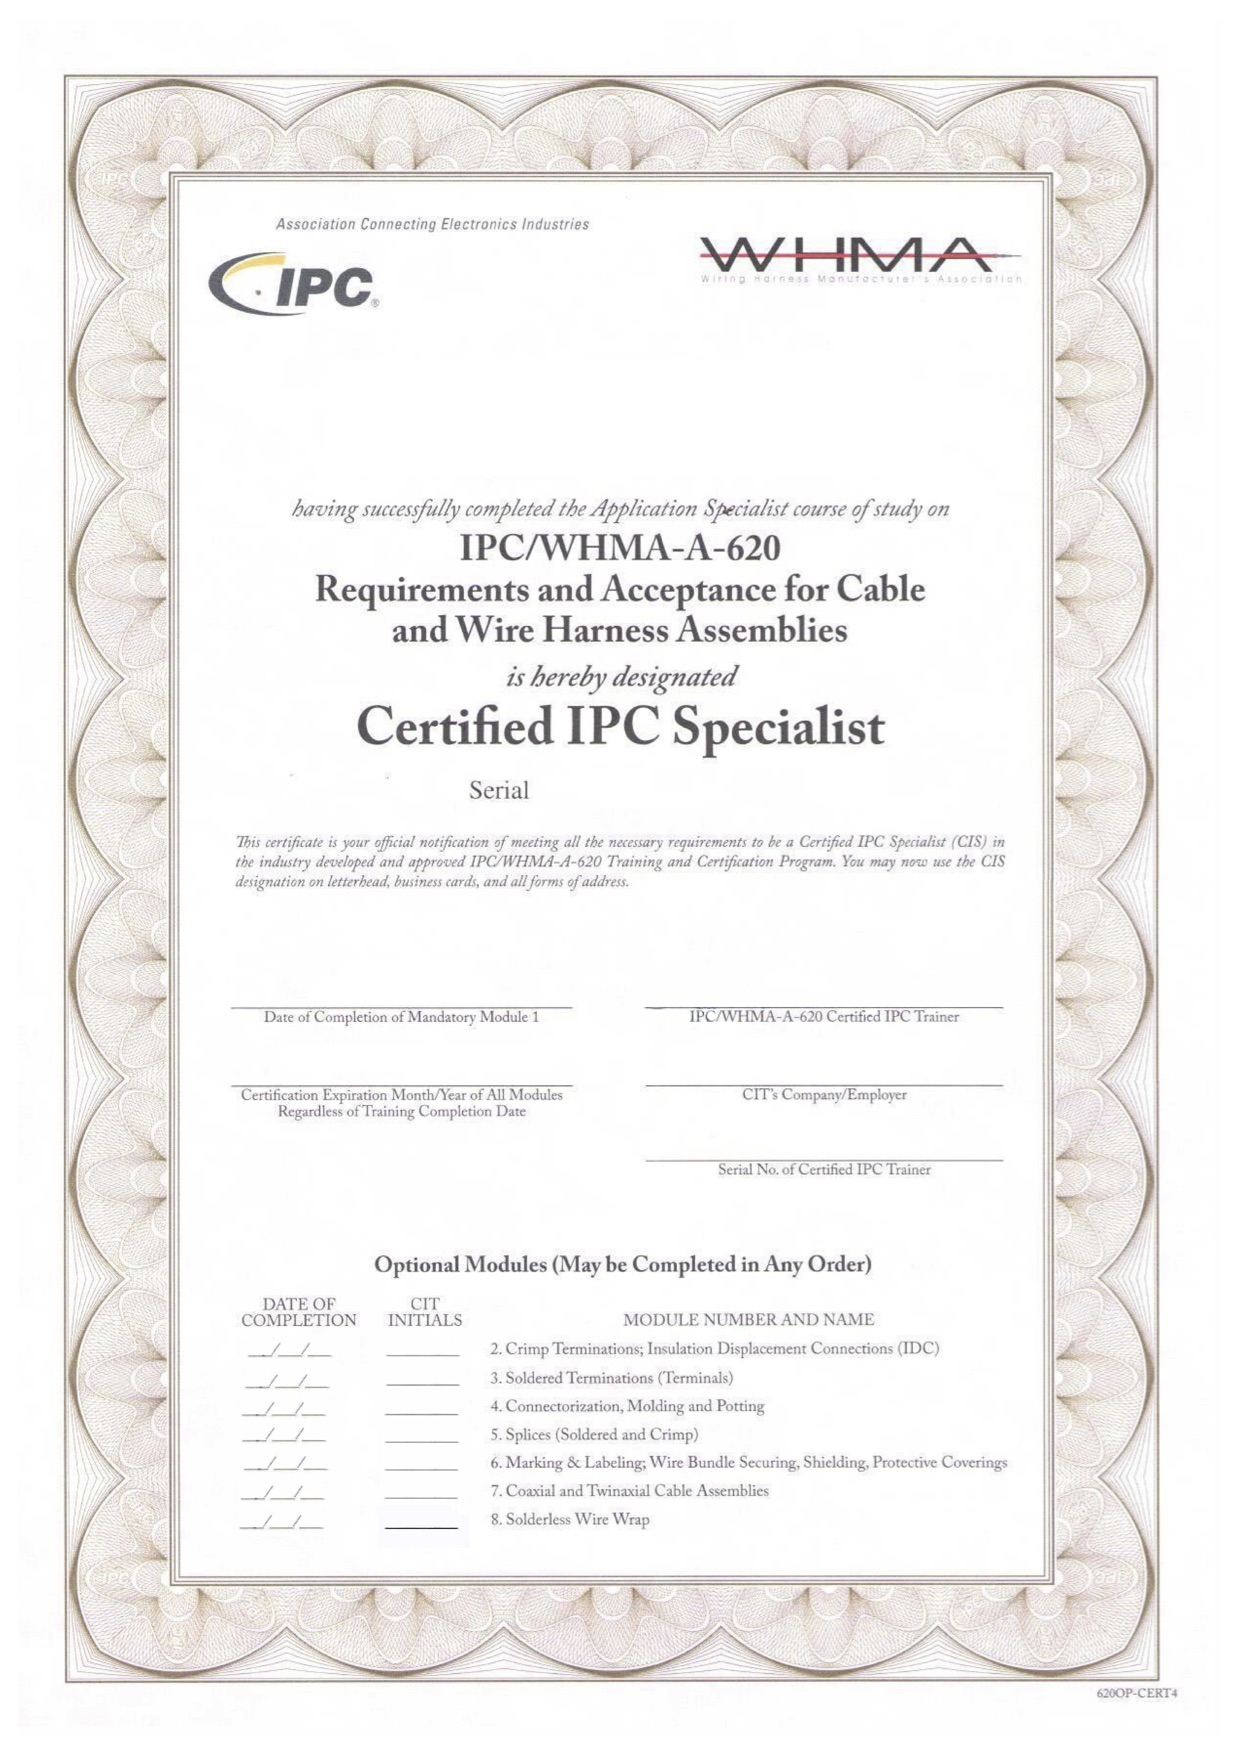 Archiwa Certificate Electro Welle